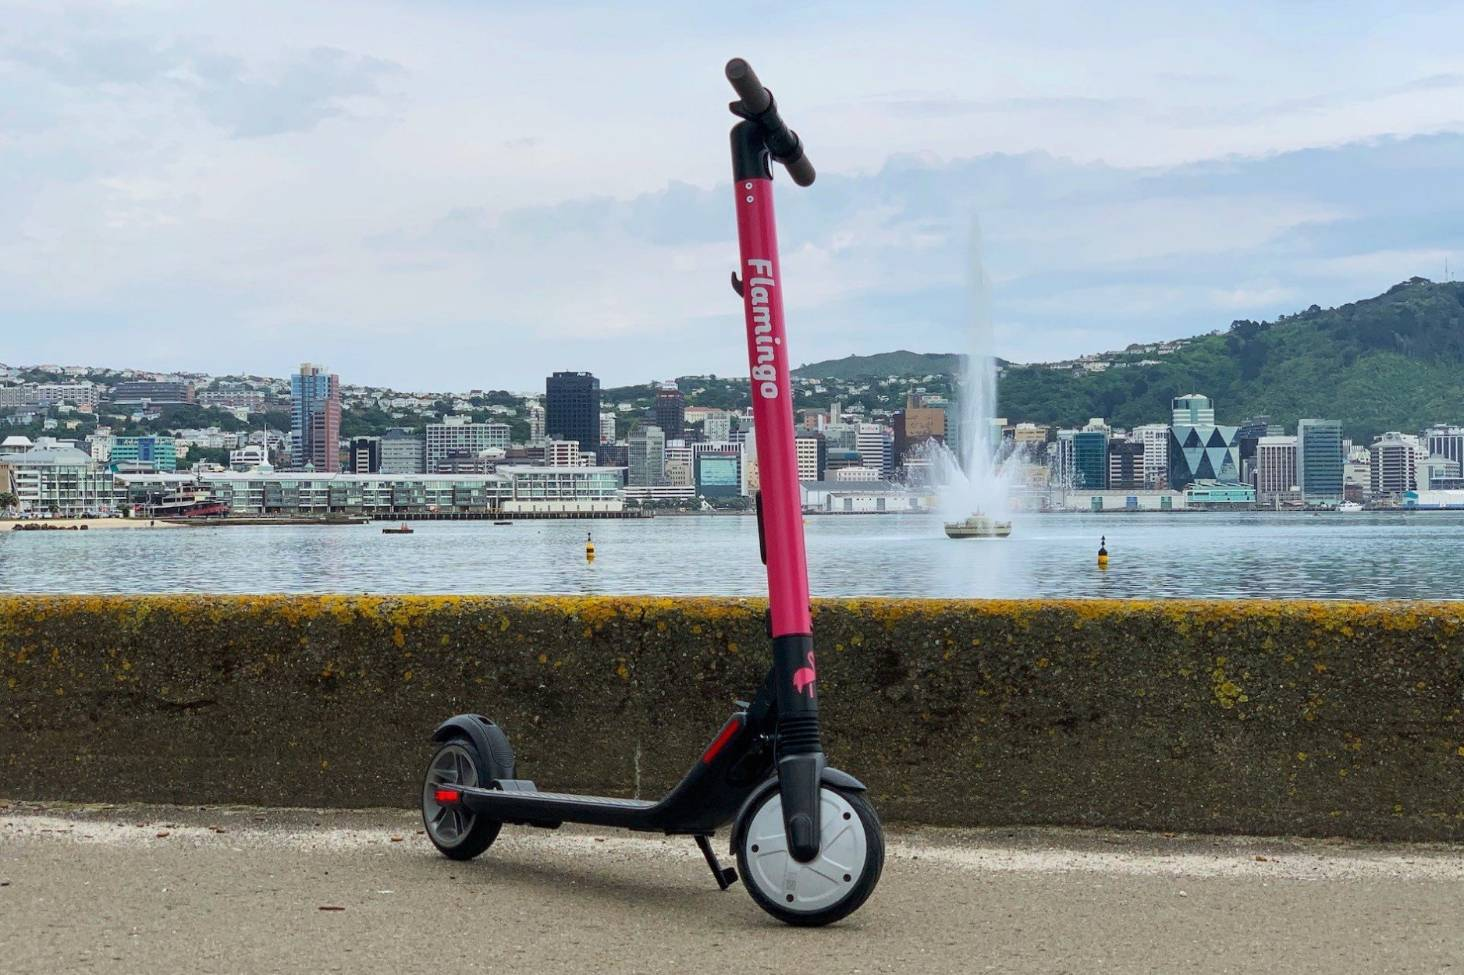 E-scooter wars advance on capital's narrow streets as